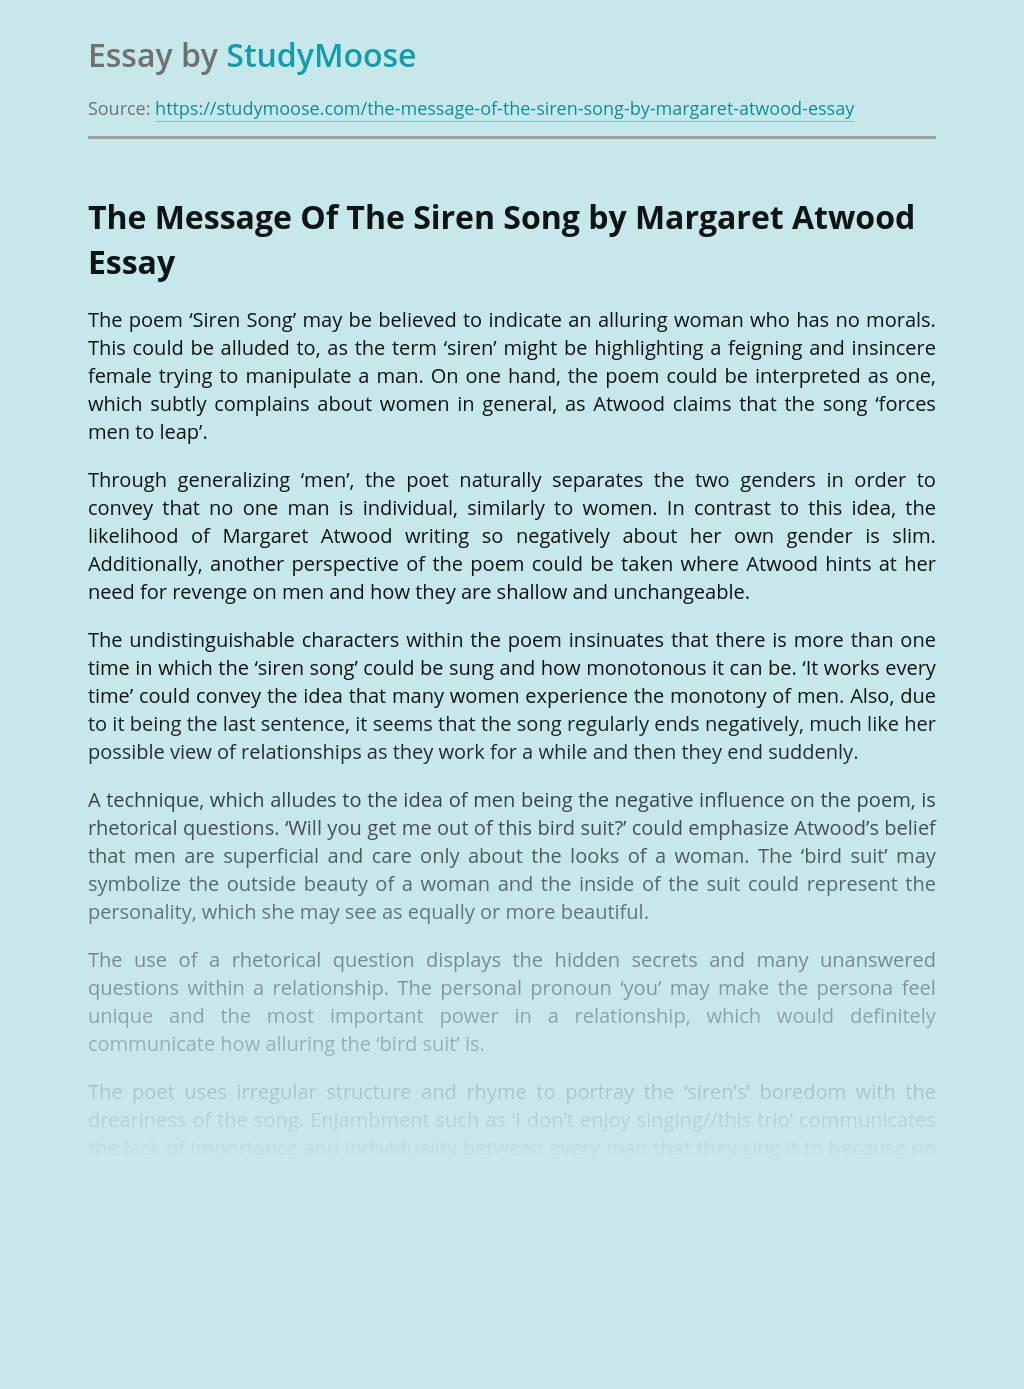 A Poem The Siren Song by Margaret Atwood